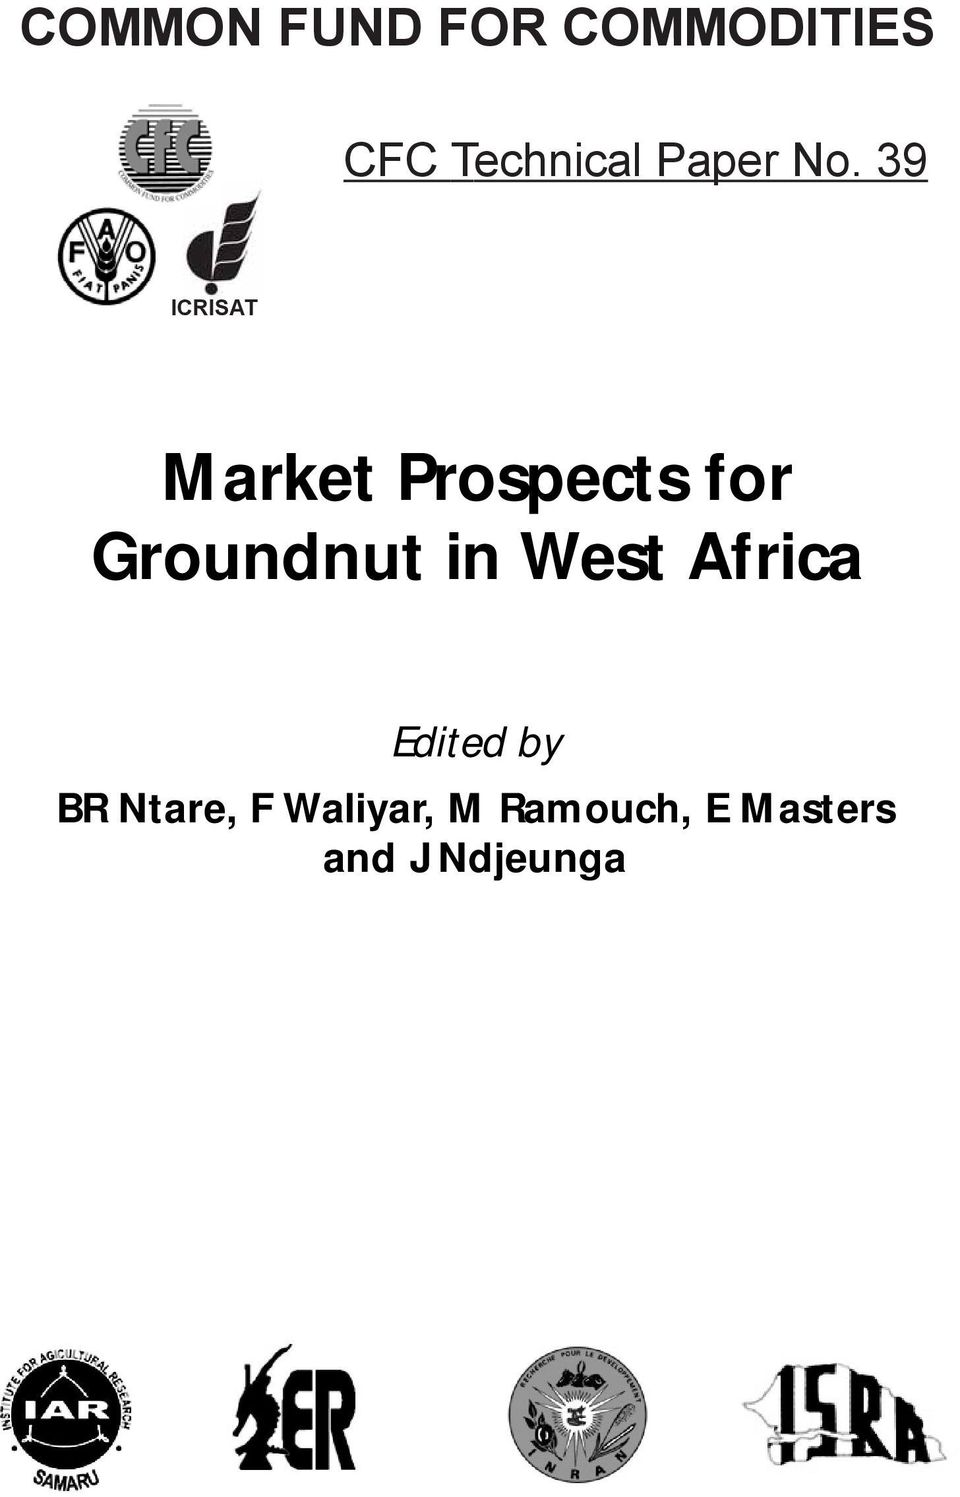 39 ICRISAT Market Prospects for Groundnut